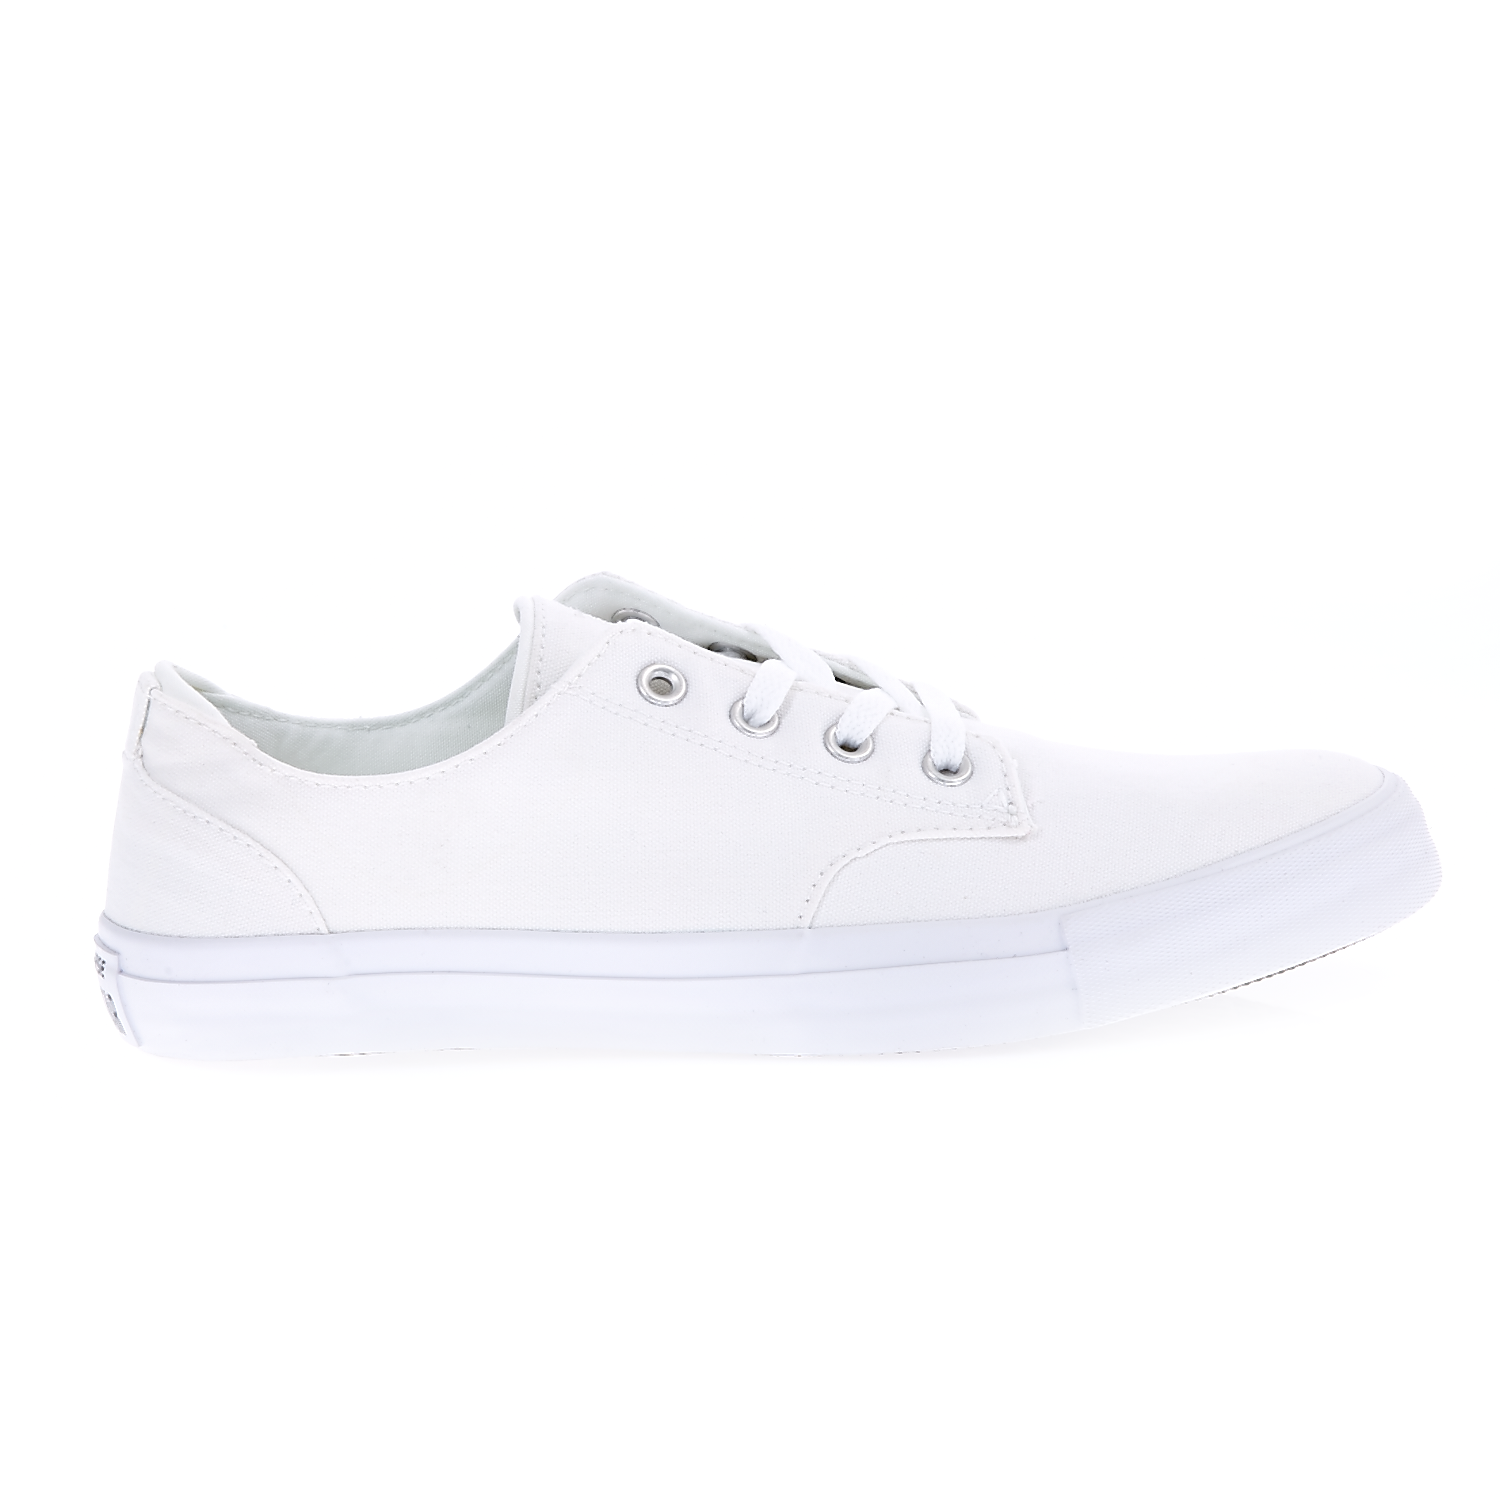 CONVERSE - Unisex παπούτσια Chuck Taylor All Star Derby Ox λευκά ανδρικά παπούτσια sneakers